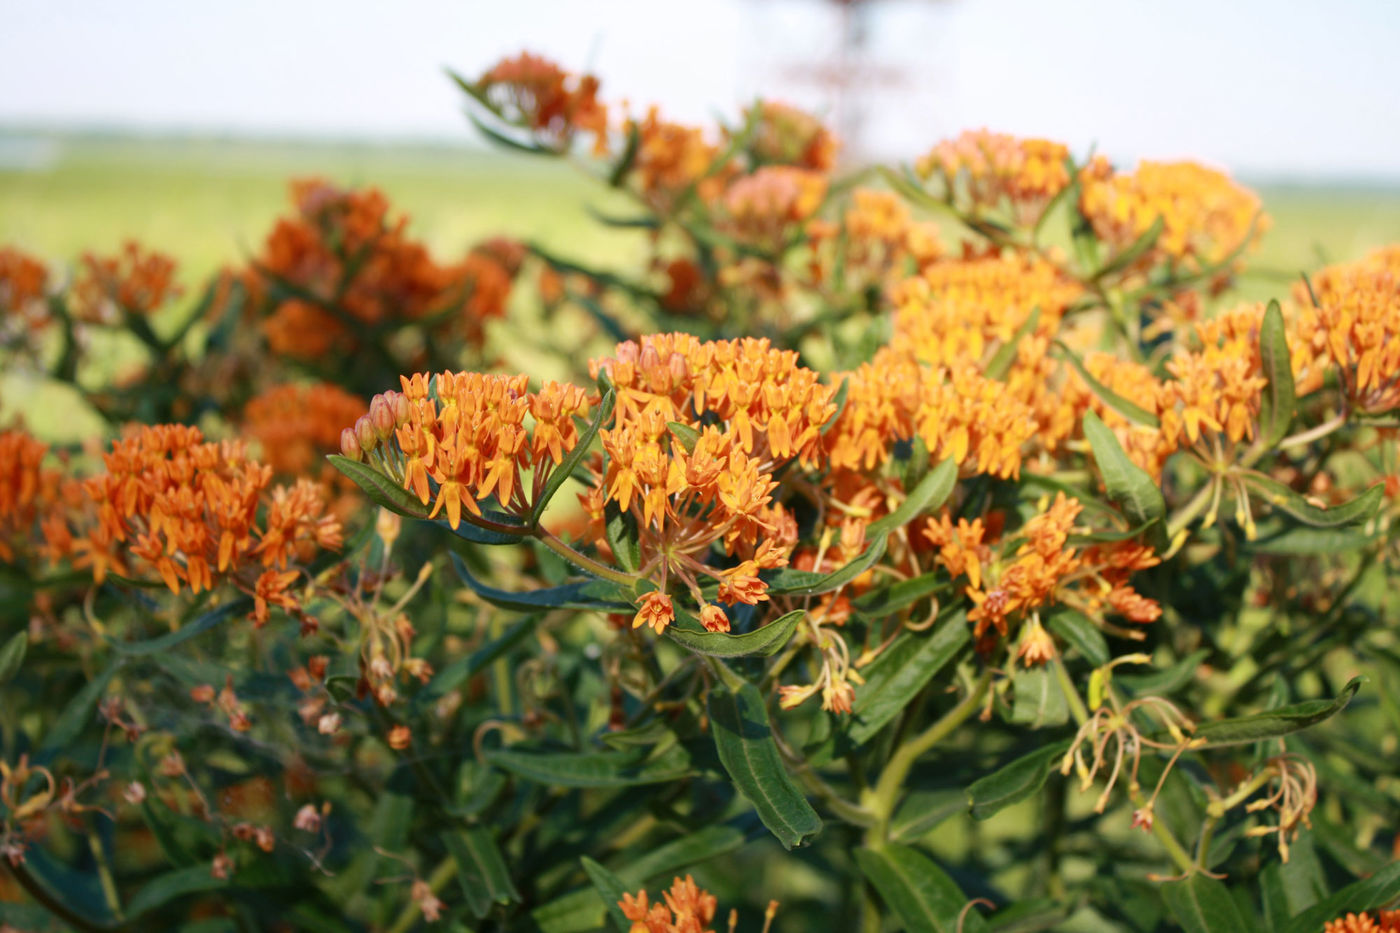 An eye-level view of many small orange flowers on top of plants with thin, dark green leaves